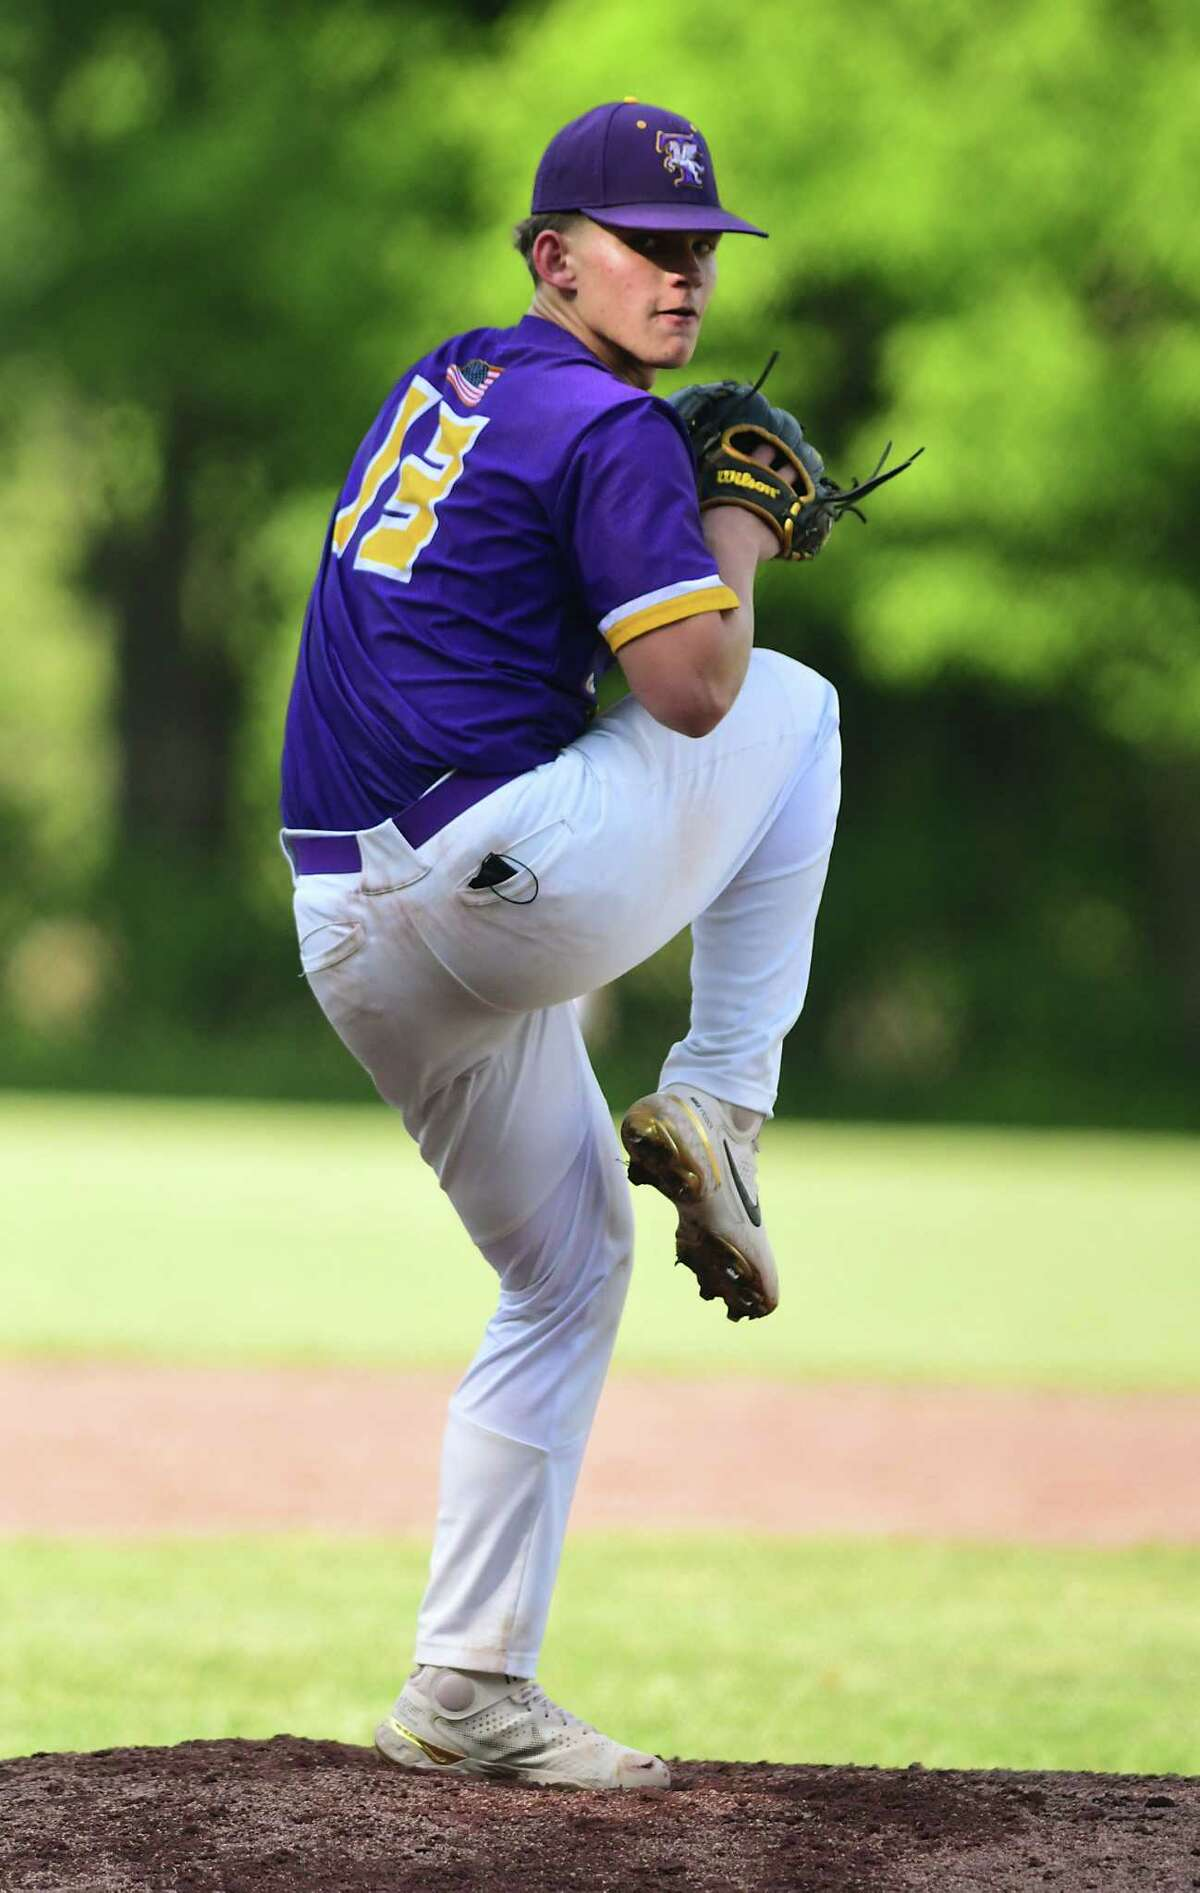 Troy pitcher Mike Kennedy, shown during a no-hitter against Averill Park, went 7-0 with a 0.32 ERA and 89 strikeouts in 44 innings in 2021.